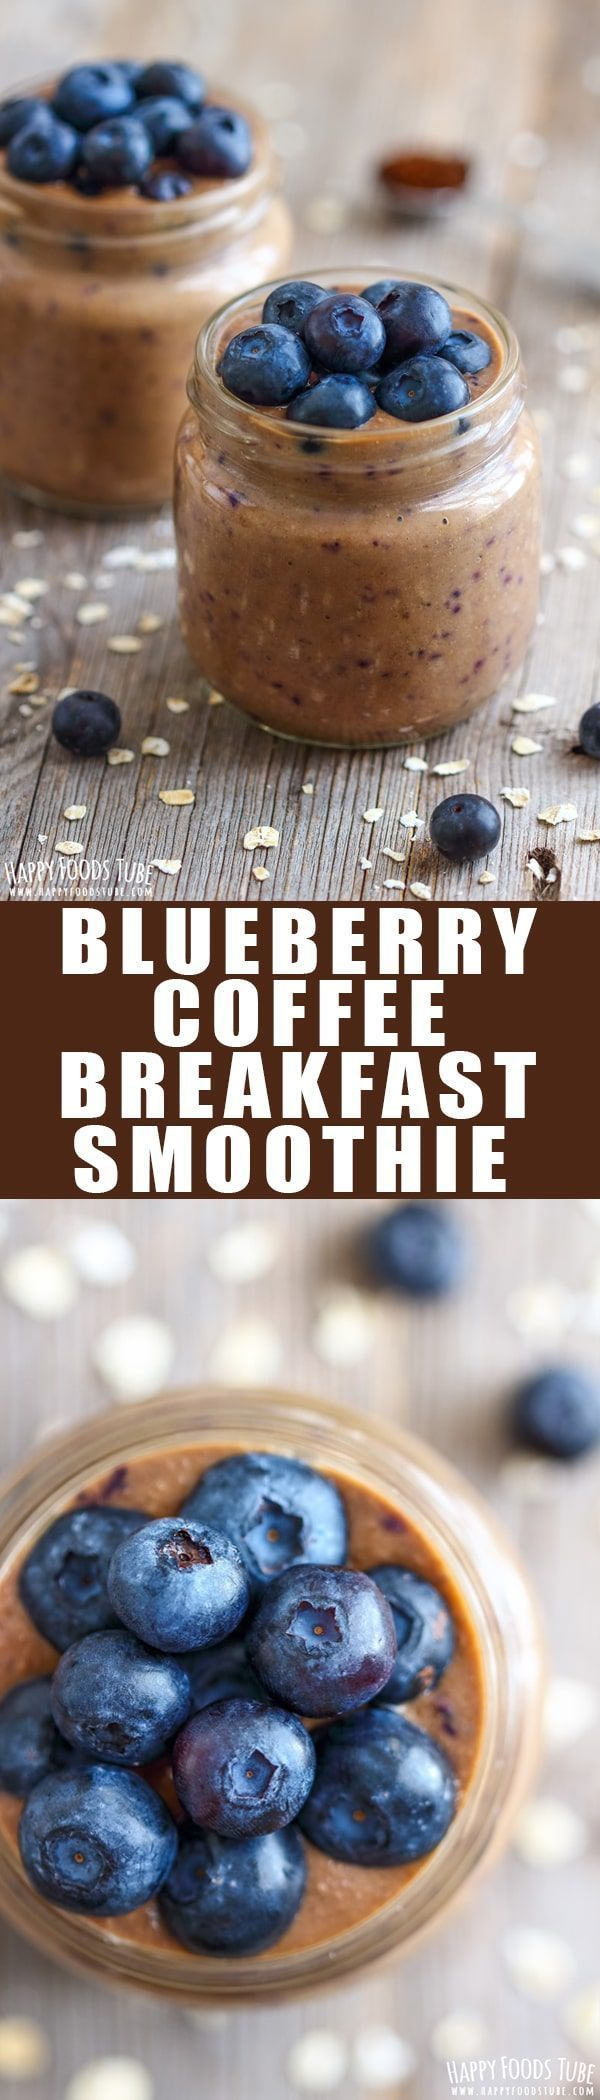 Blueberry Coffee Breakfast Smoothie #dairyfreesmoothie